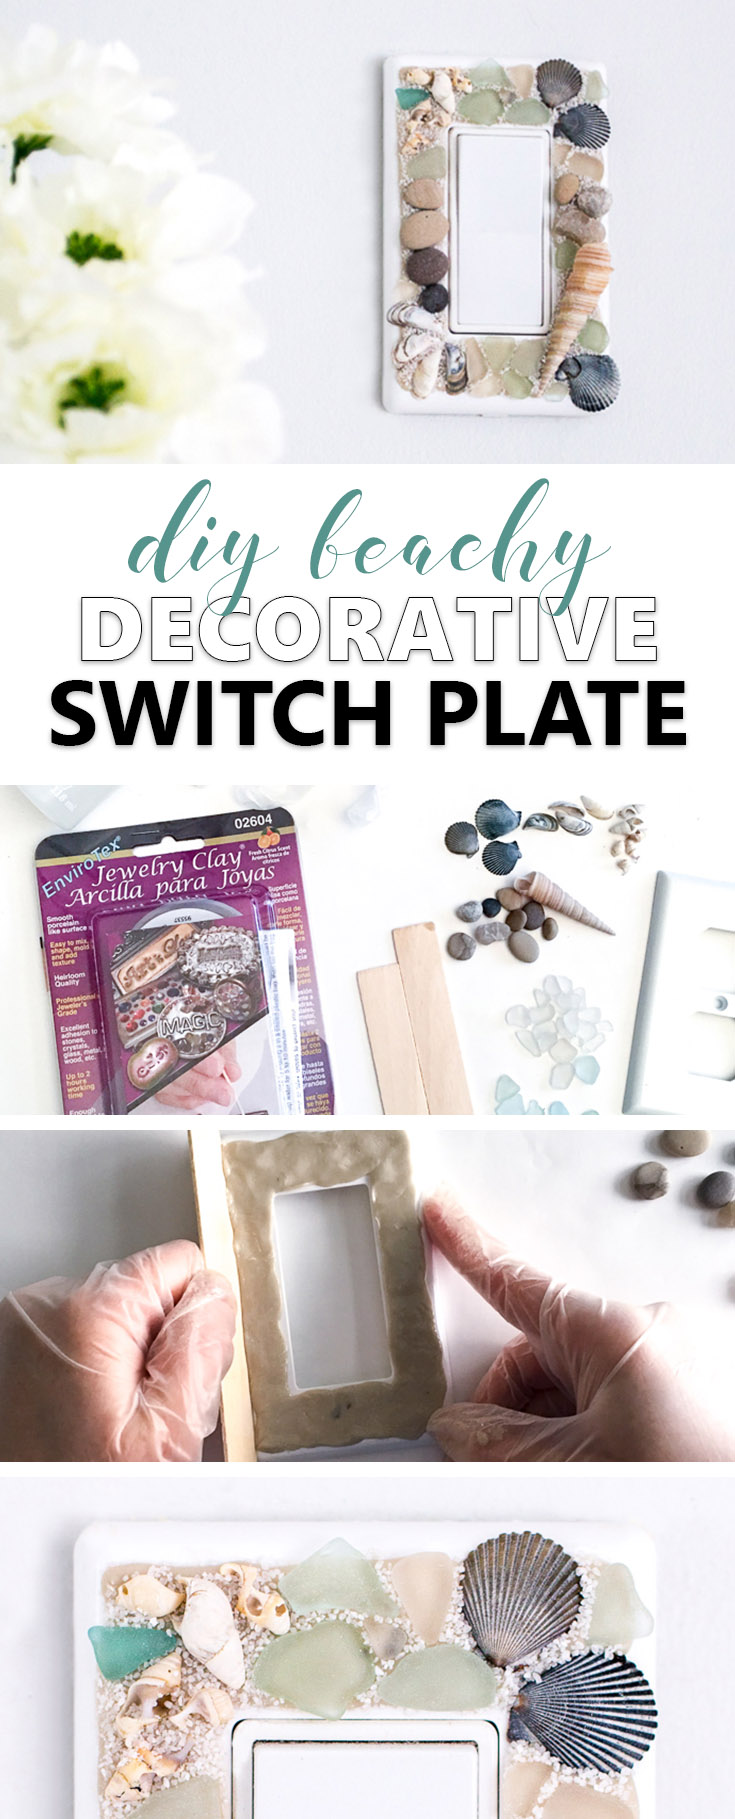 learn how to make your own beachy decorative switch plates with sea glass stones and